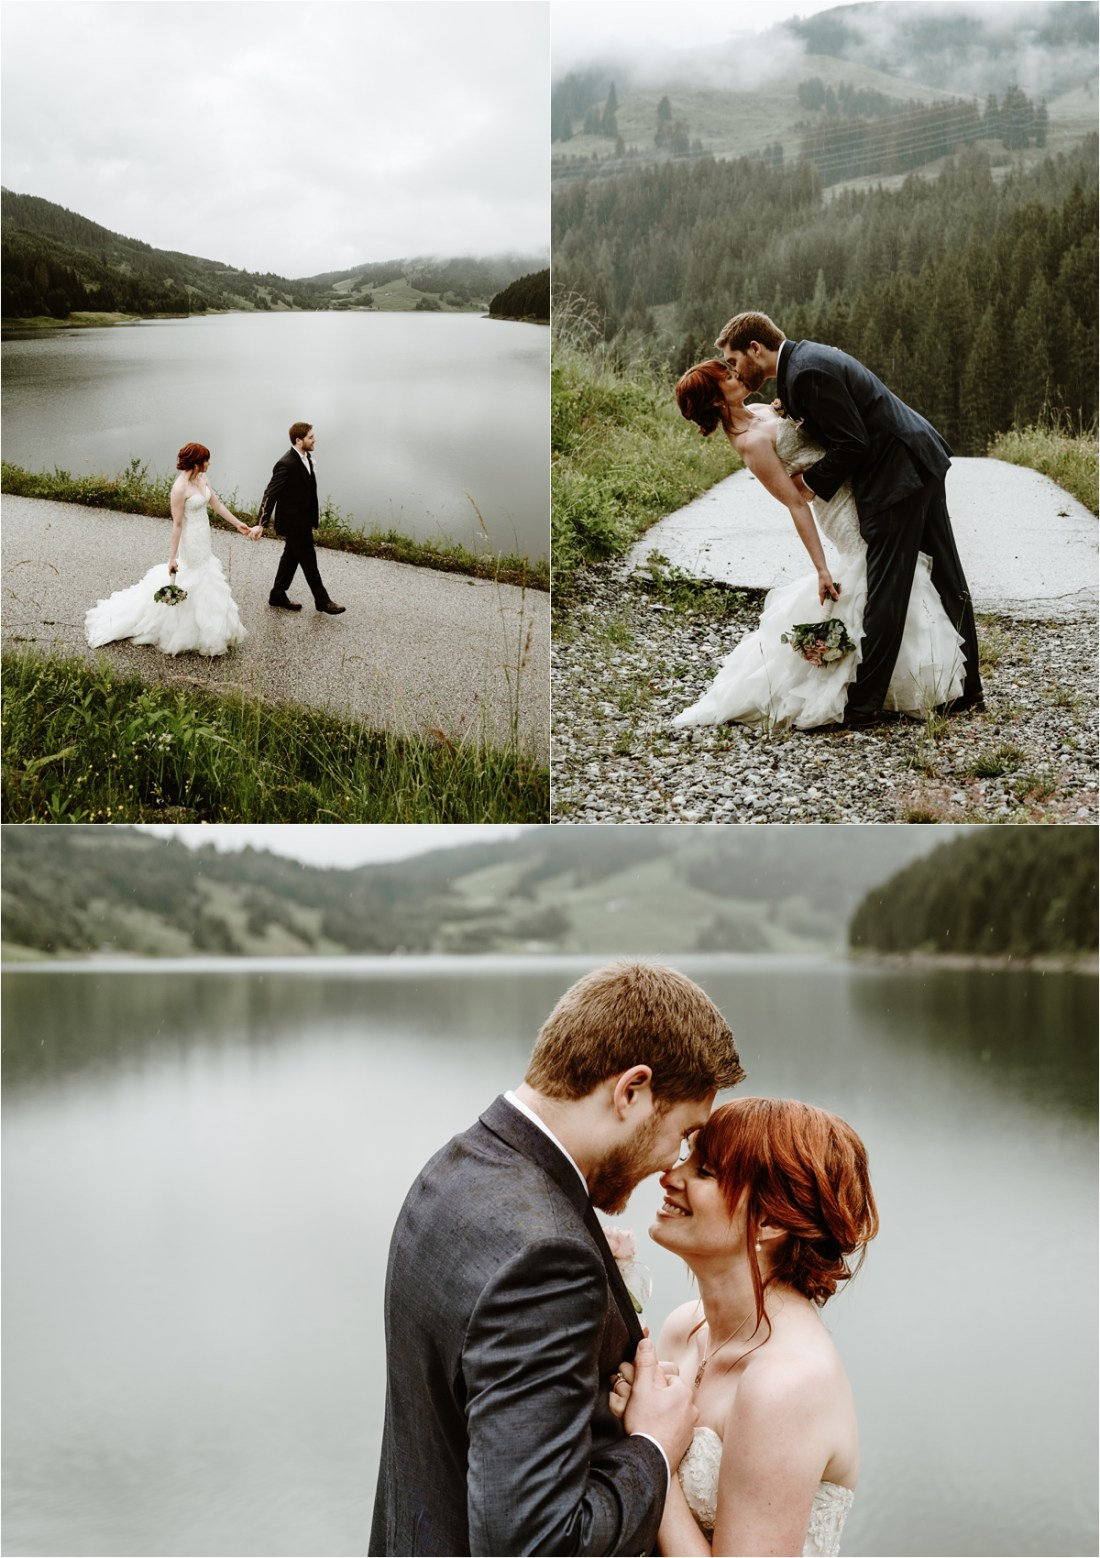 The bride and groom kiss in the rain after their intimate ceremony in the Austrian Alps. Photos by Wild Connections Photography